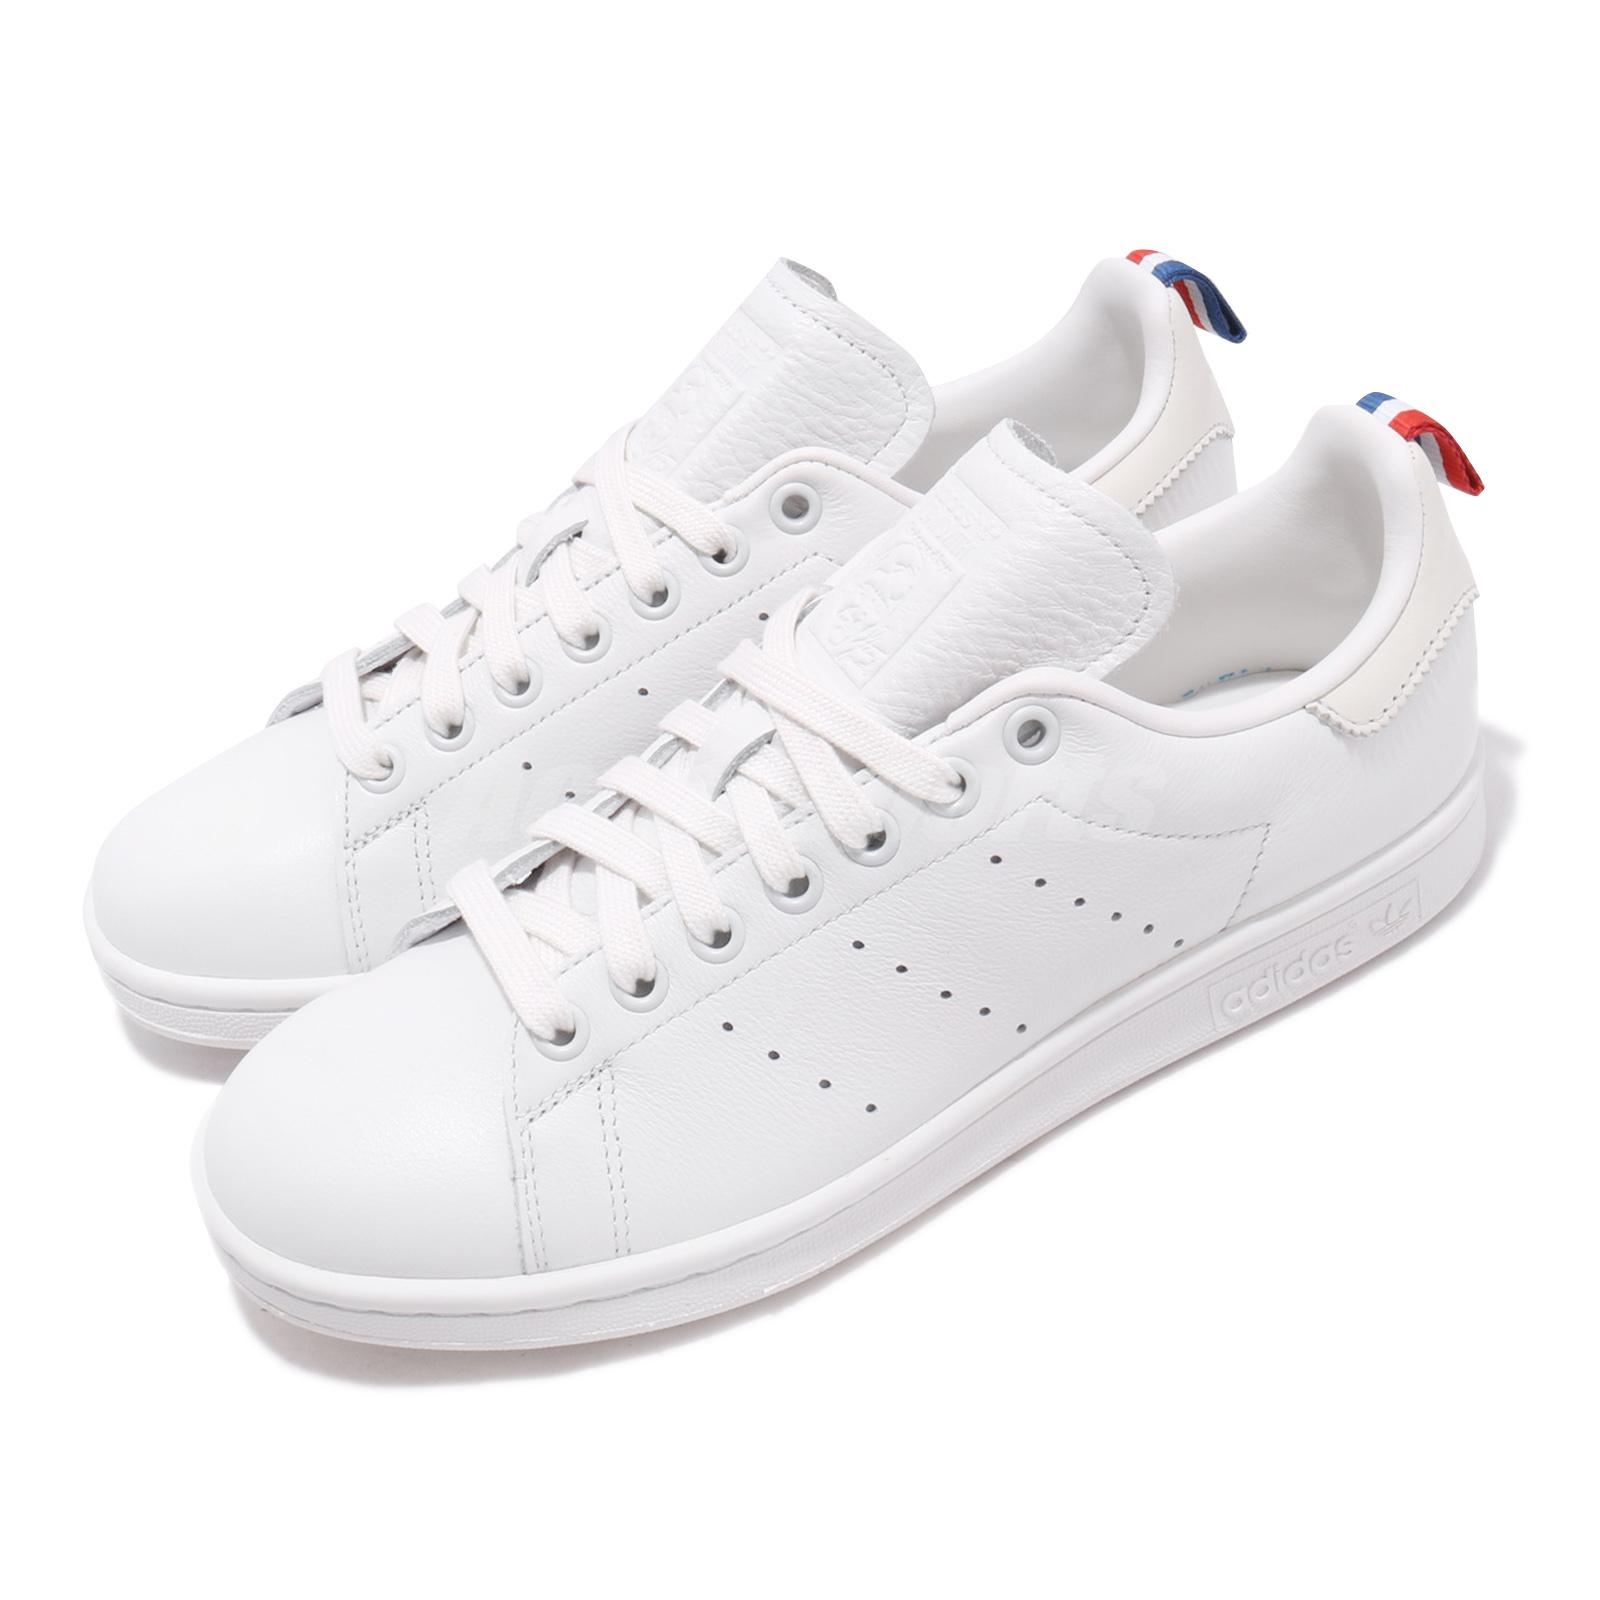 Details about Adidas Originals Stan Smith Unisex Men Women Sneakers Shoes New In Box Athletic